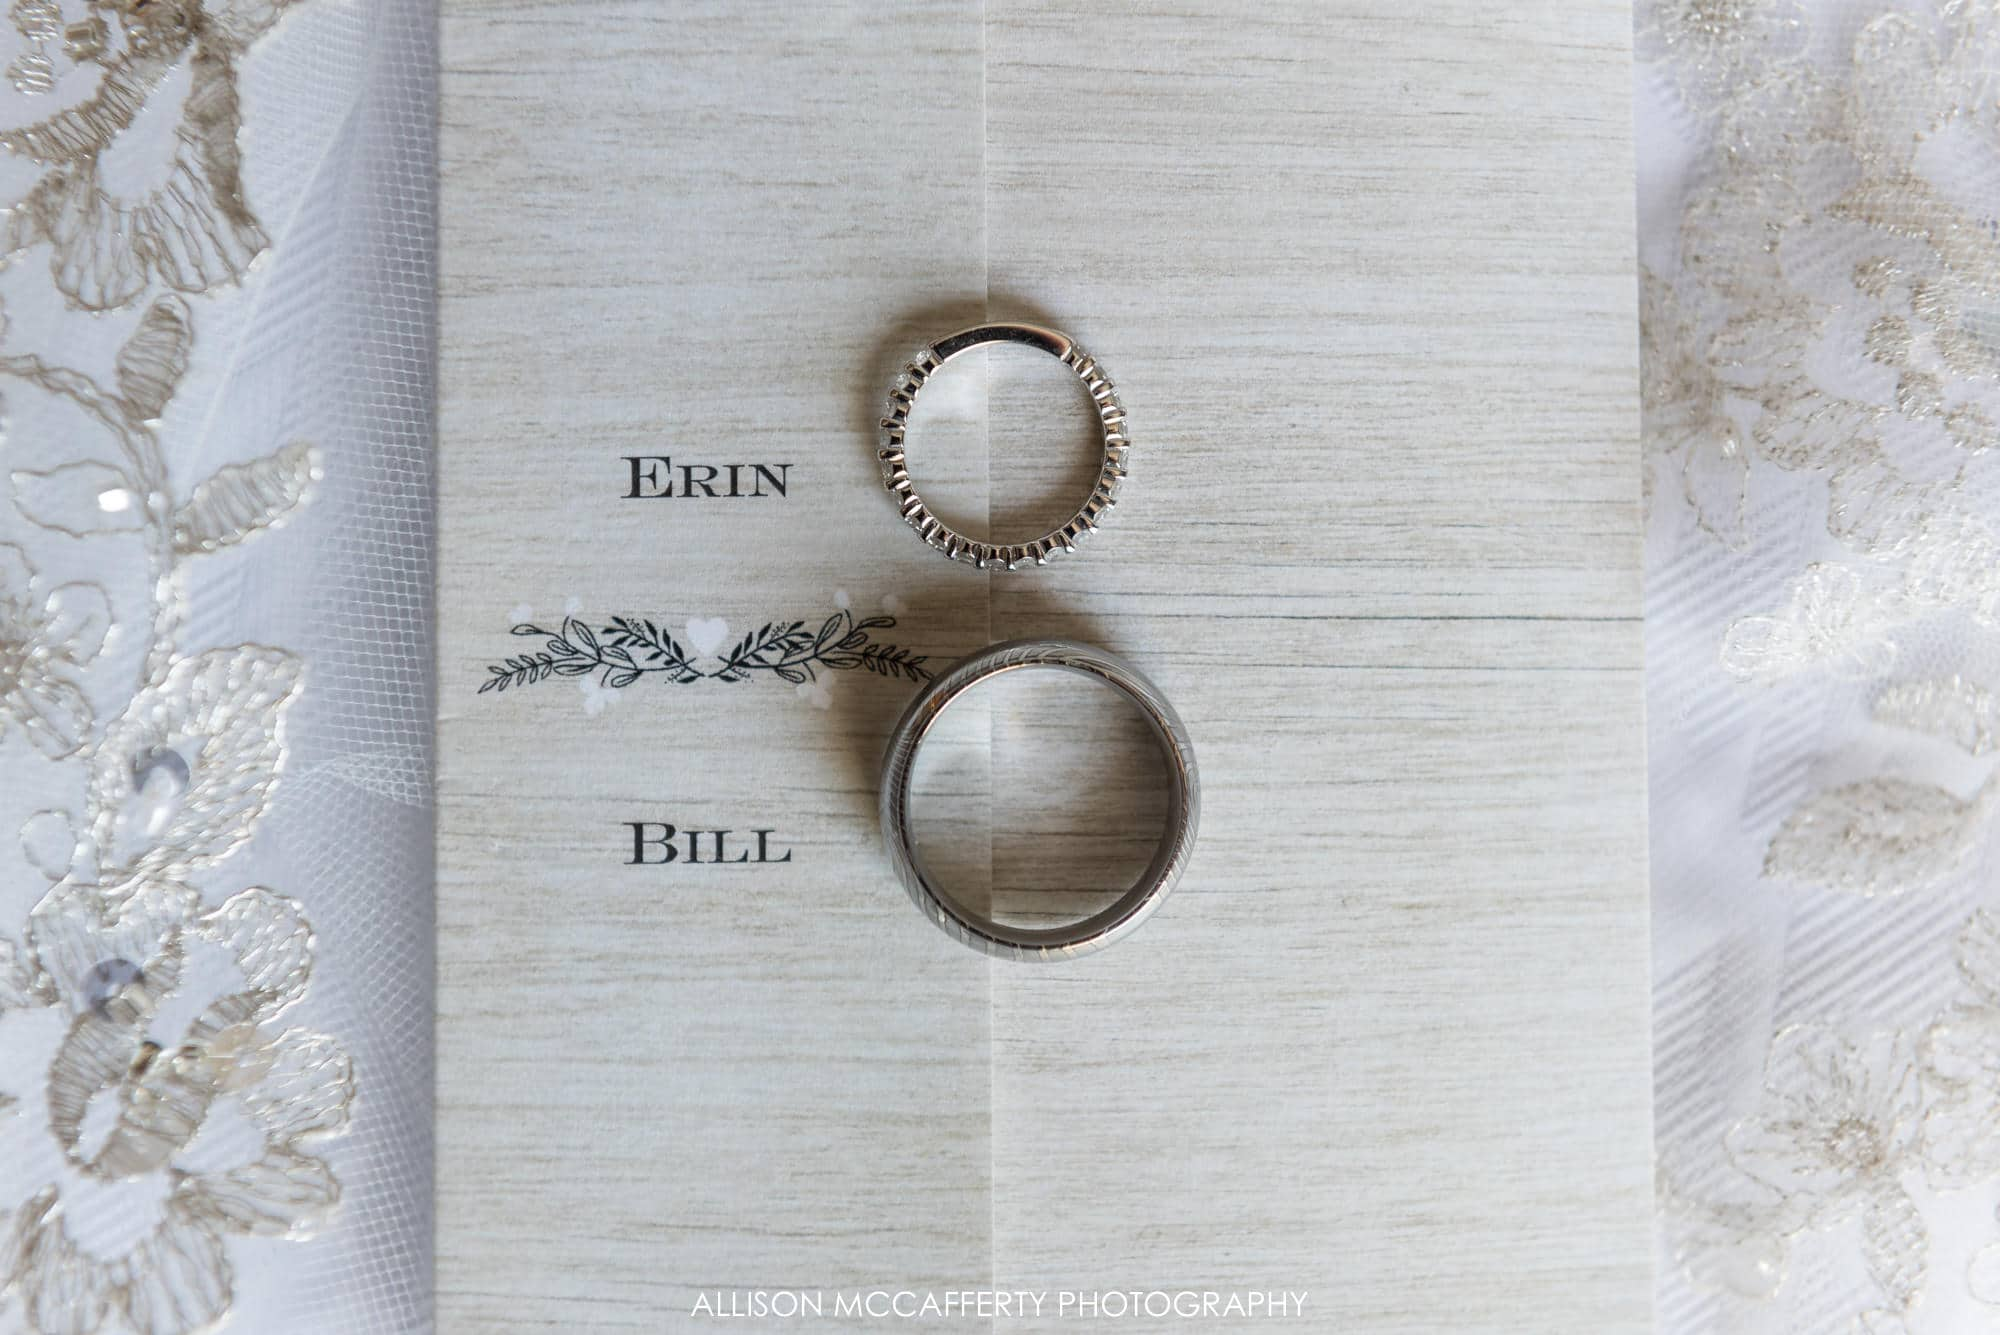 Rings on top of wedding invitation